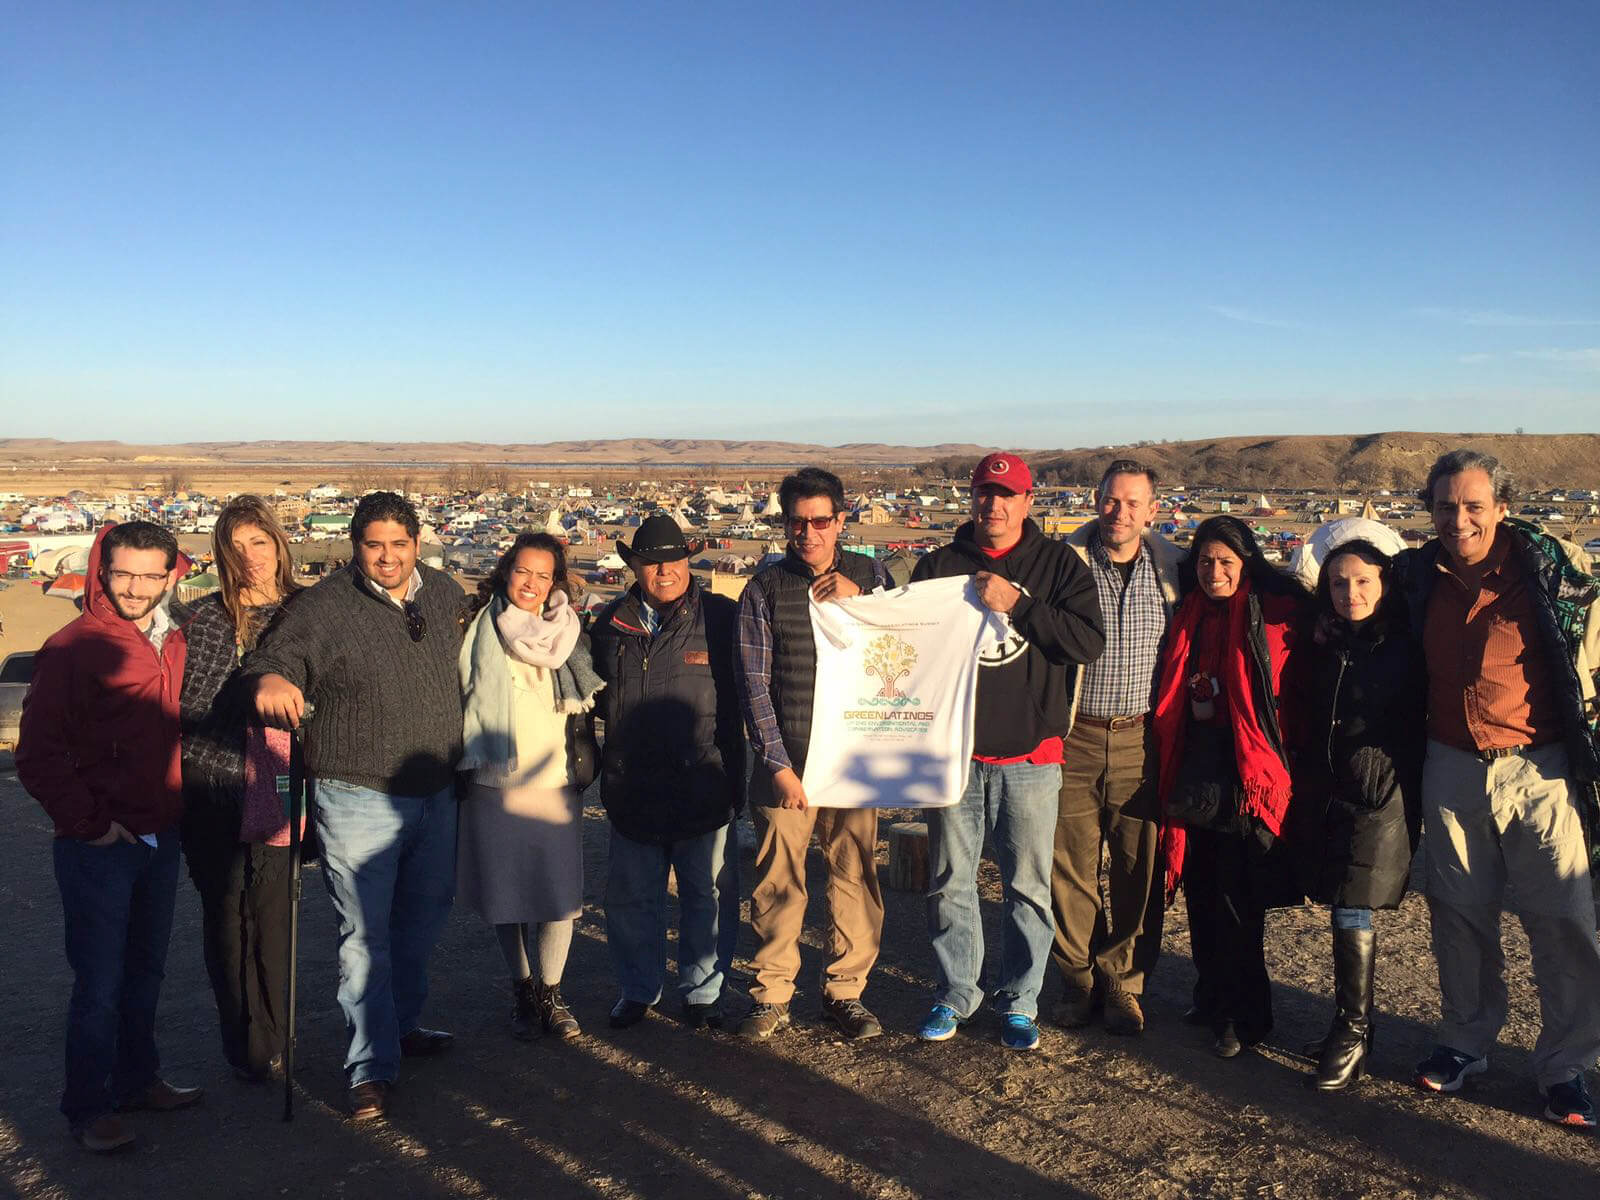 Victory for Standing Rock